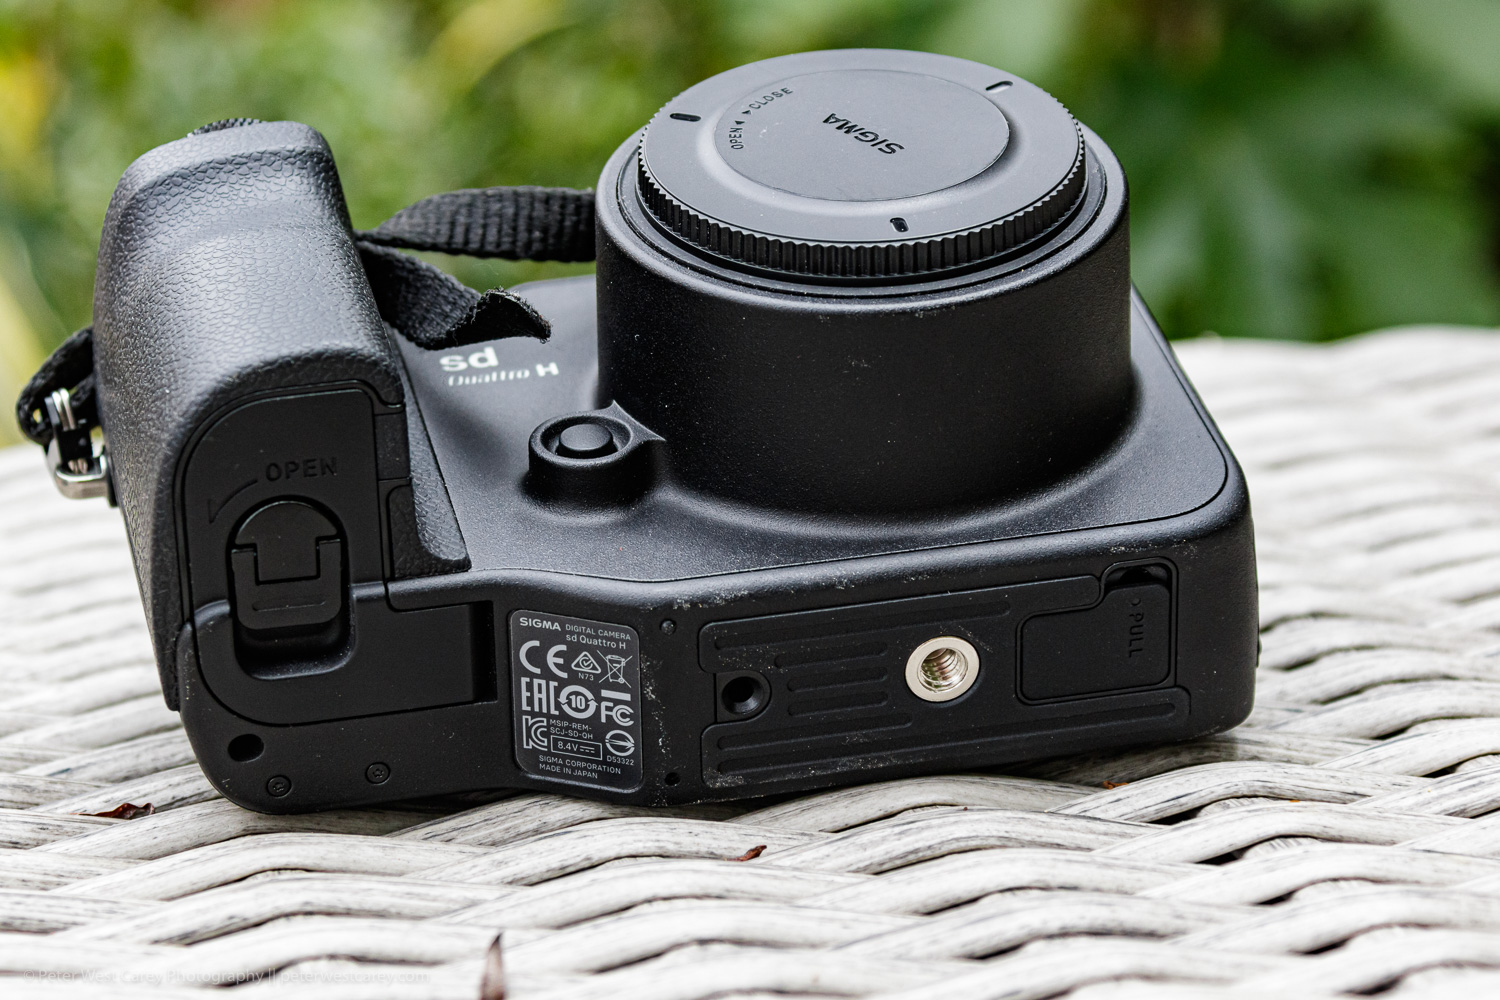 Sigma-sd-Quattro-H-camera-review-6